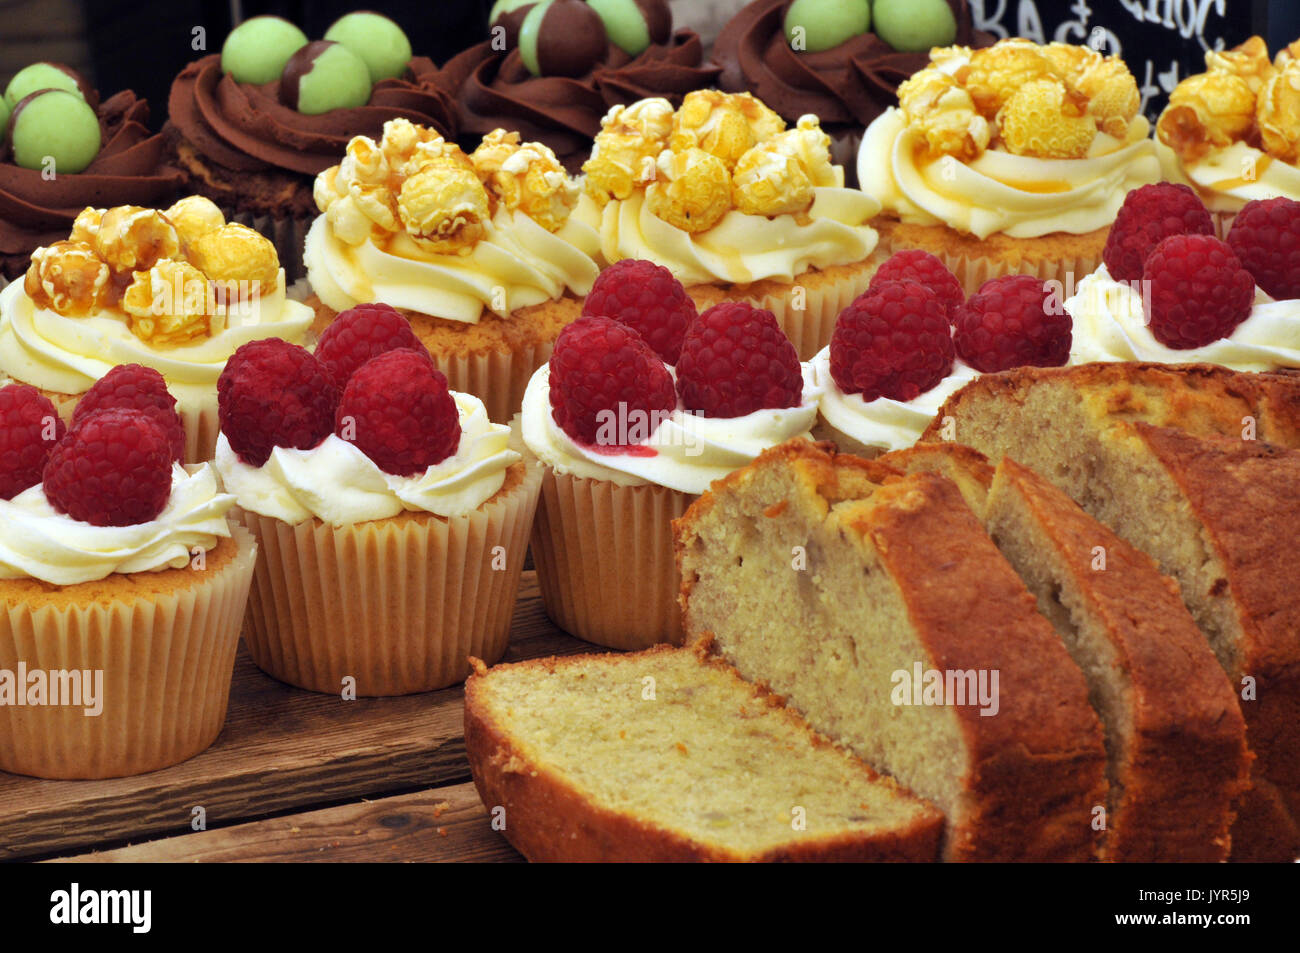 Some gluten free sticky cream and iced icing cakes on display on a cake stand sweet sugary produce for sale very tempting deserts and confections - Stock Image